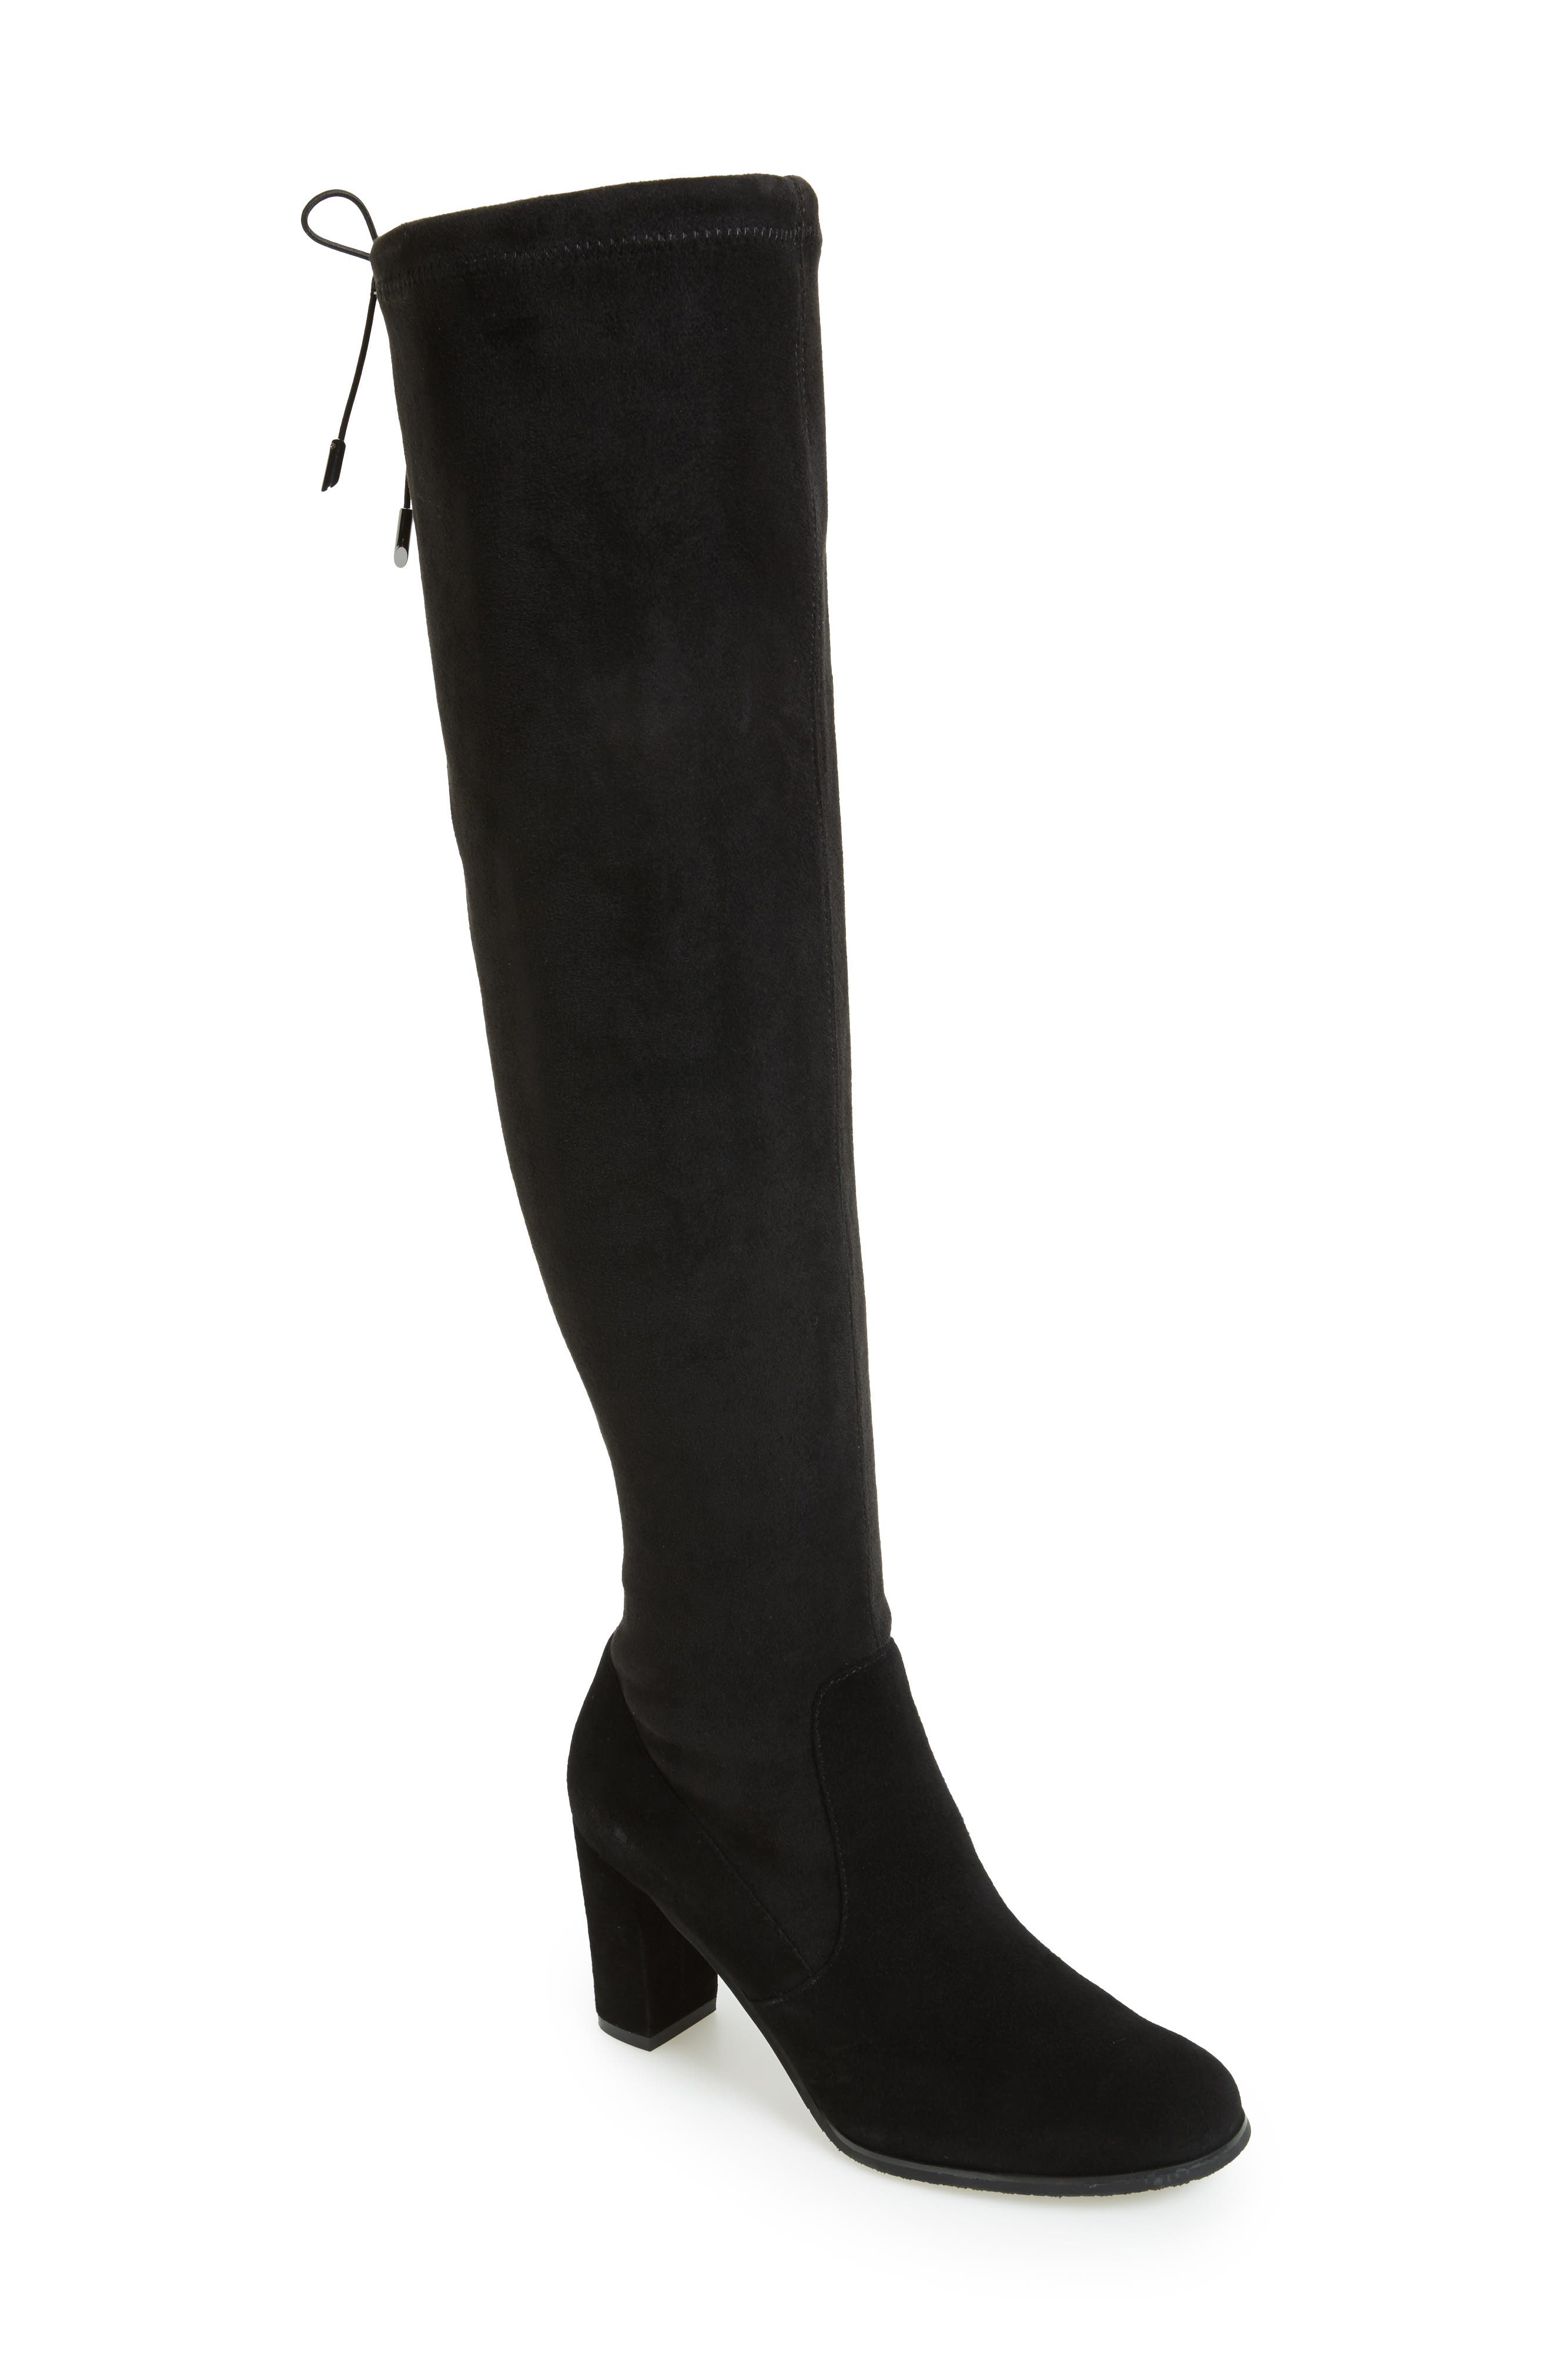 Kali Waterproof Over the Knee Boot,                             Main thumbnail 1, color,                             BLACK SUEDE